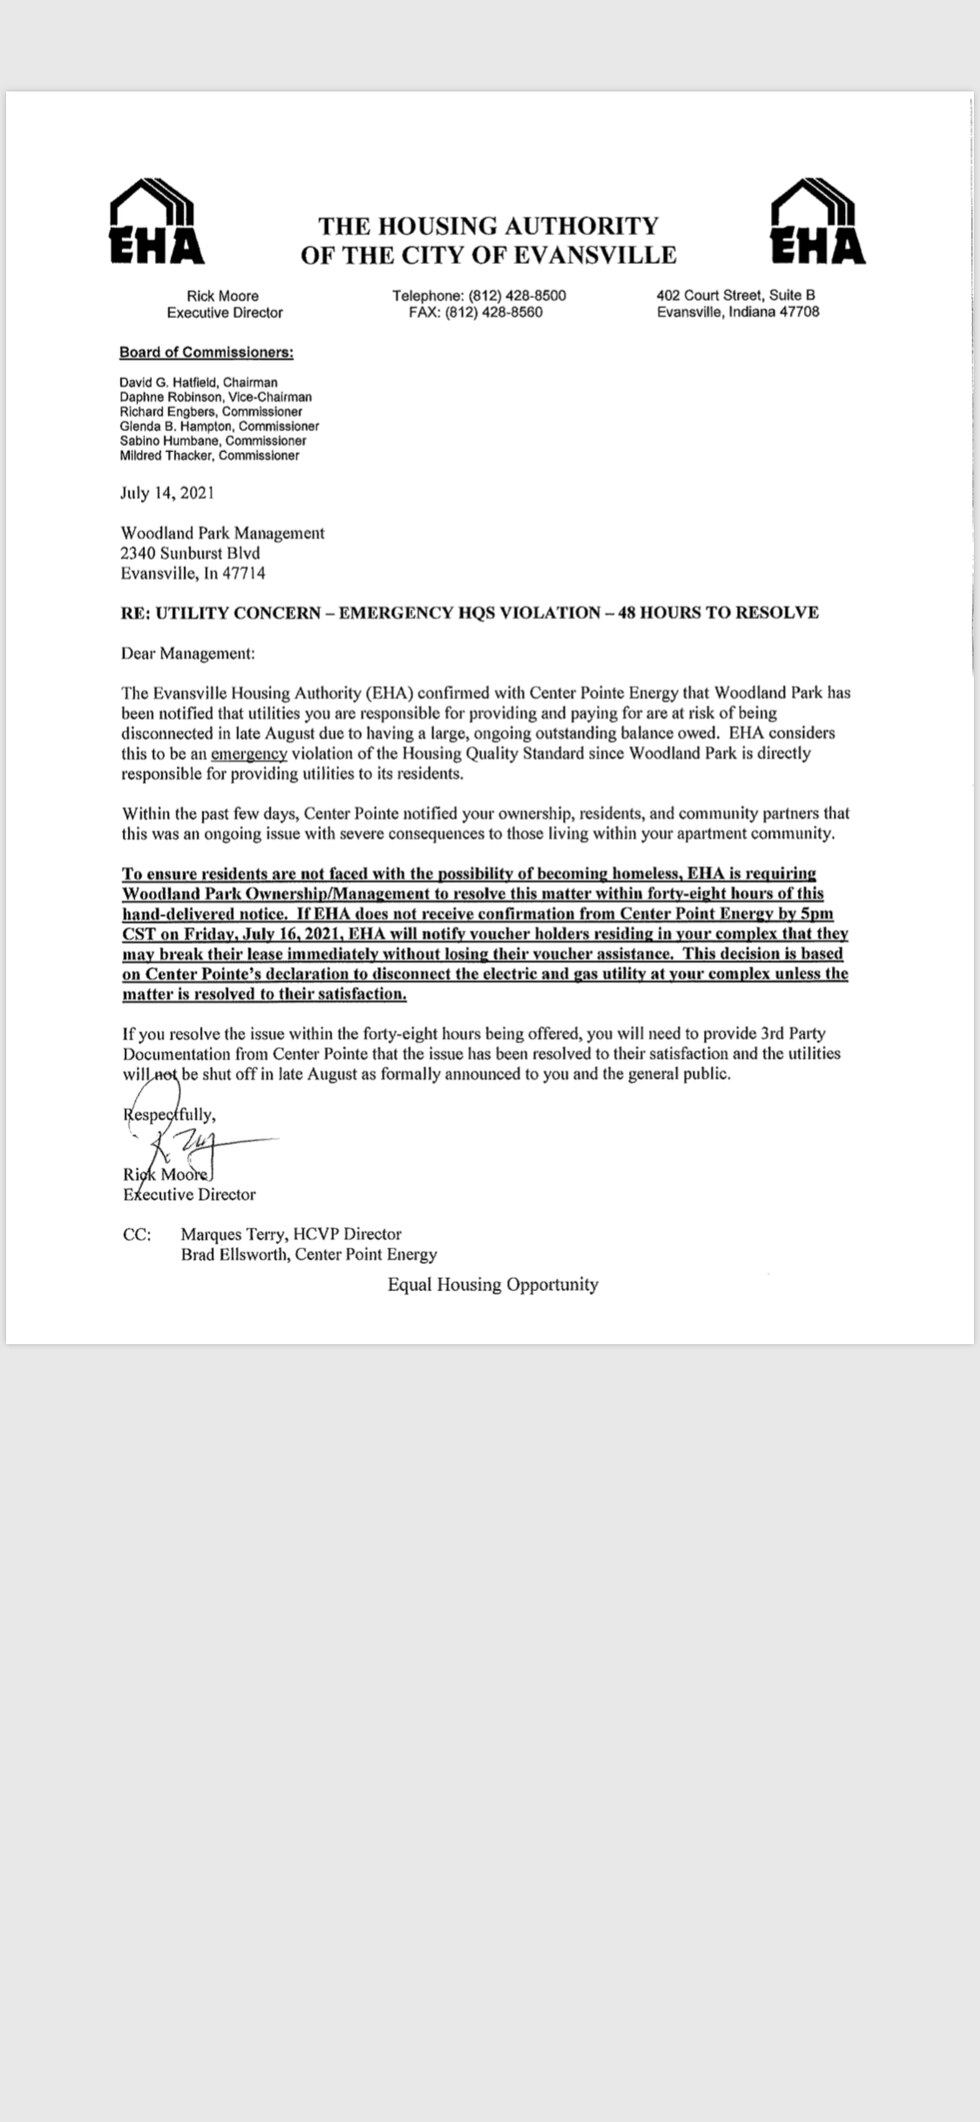 Letter to management/residents at Woodland Park Apartments.